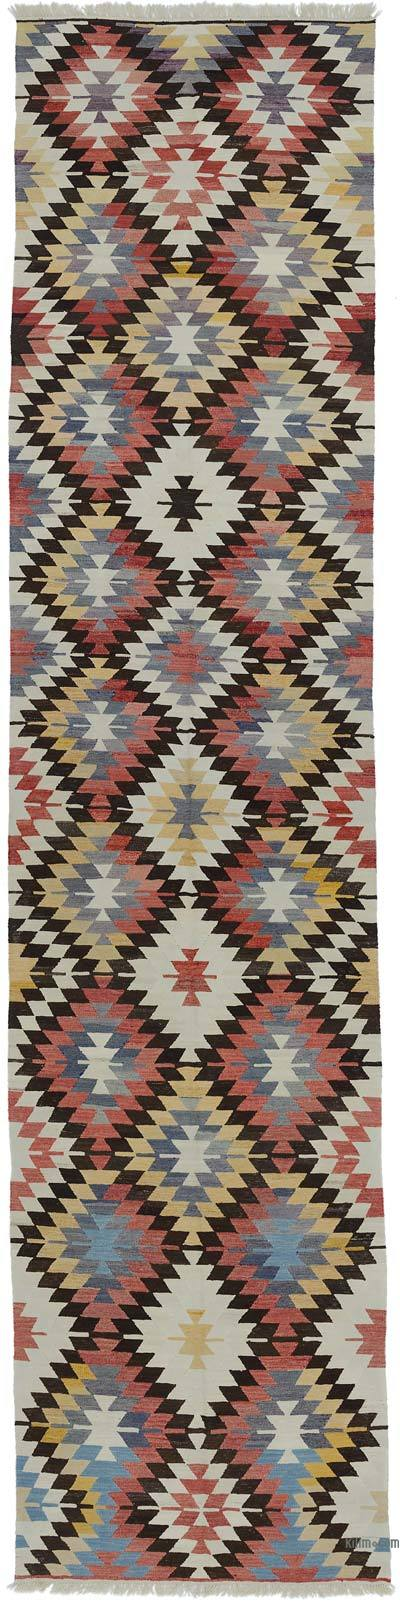 "New Handwoven Turkish Kilim Runner - 4' 6"" x 19' 3"" (54 in. x 231 in.)"